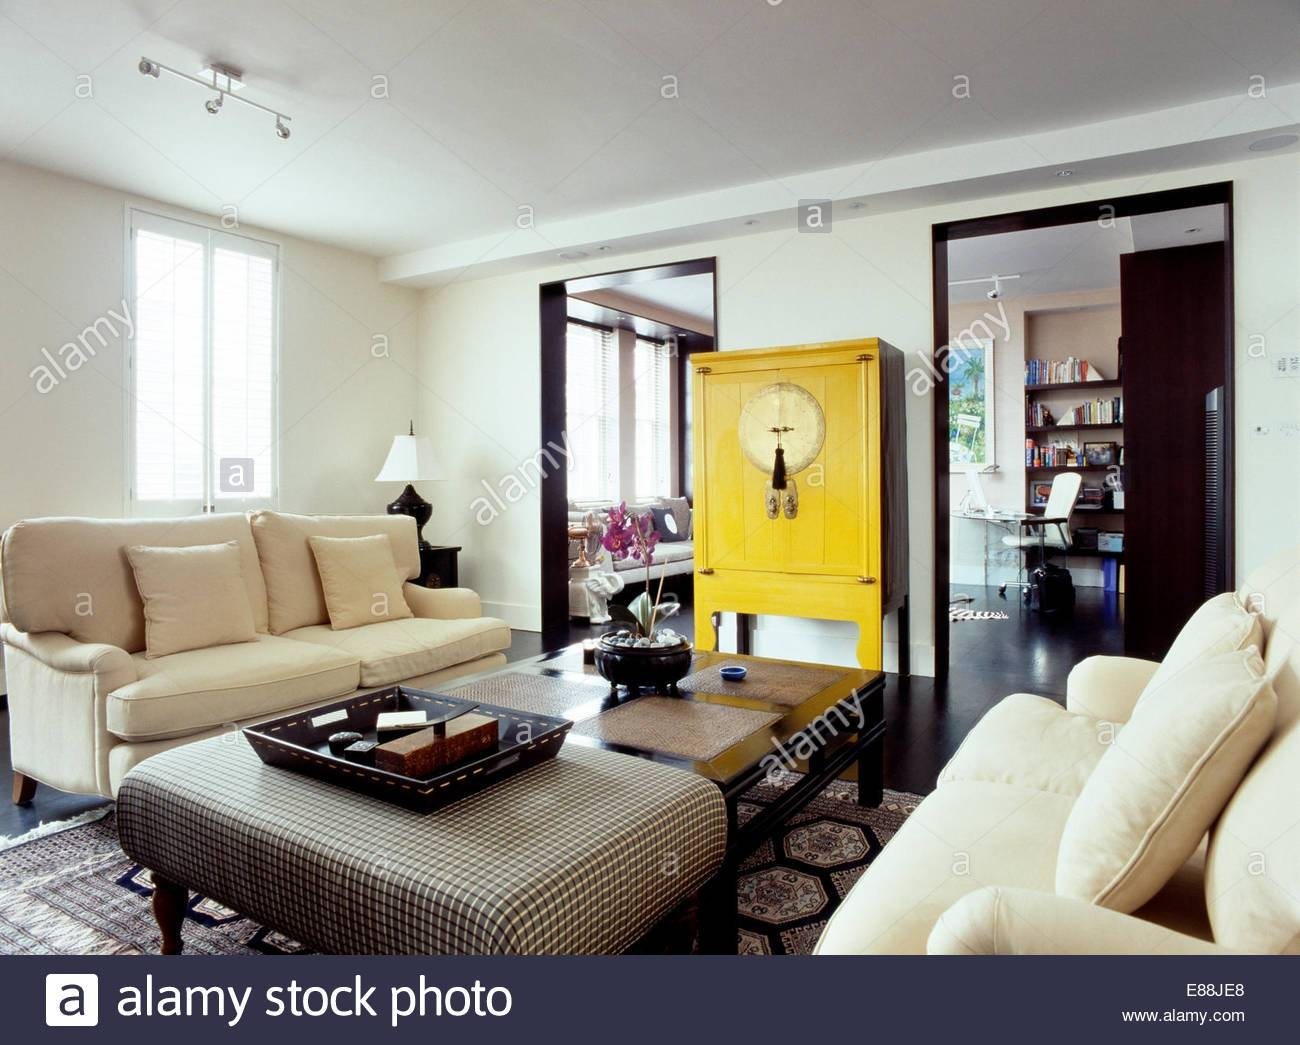 Interiors Sittingroom Sofa Yellow Stock Photos & Interiors pertaining to Yellow Chintz Sofas (Image 23 of 30)